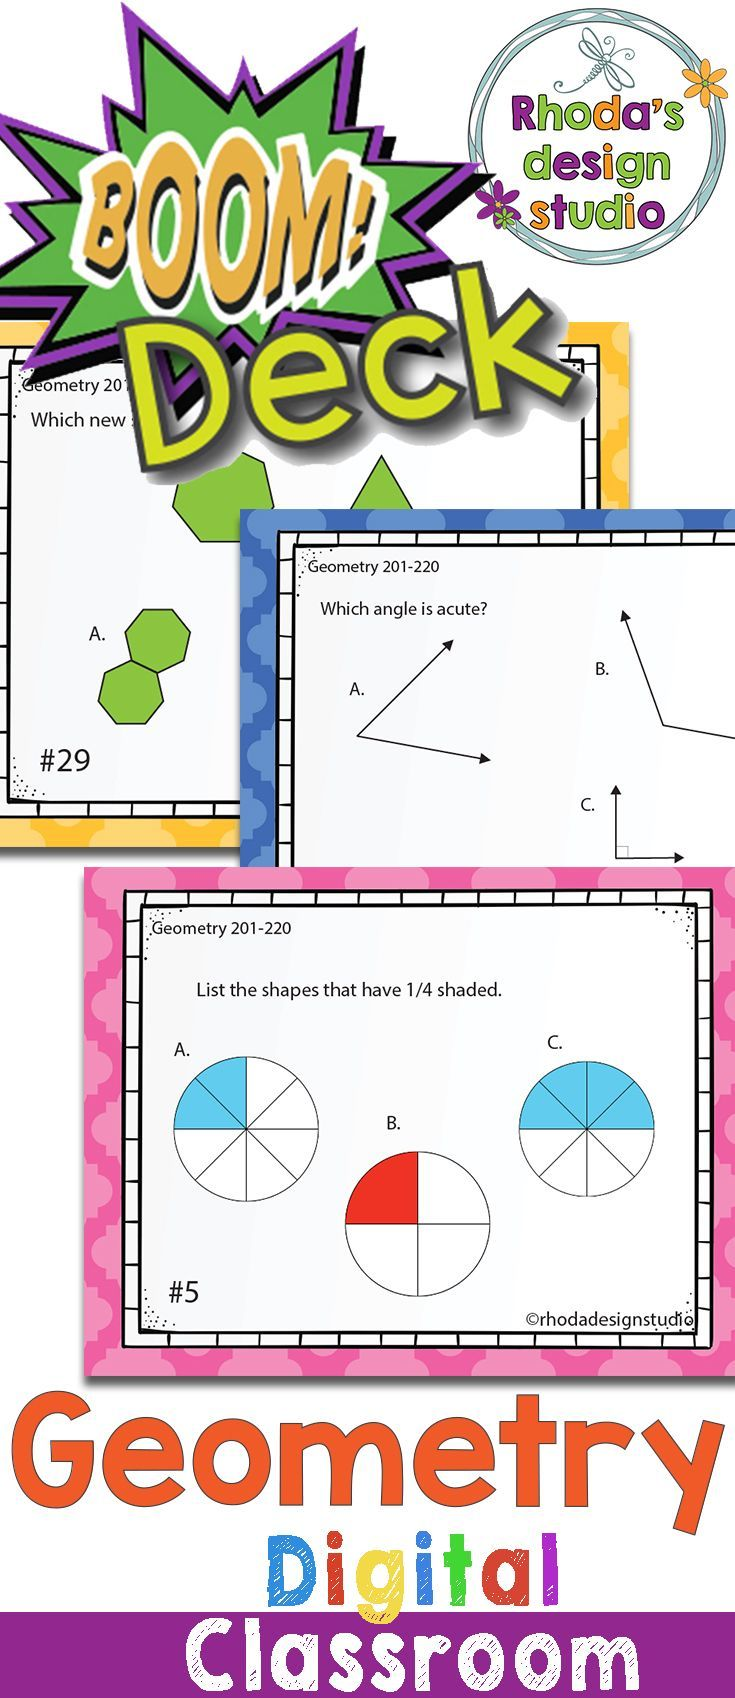 Boom Learning Deck covers RIT Band 181-190: Geometry include: defining coordinates, sides, angles, visualizing new shapes, naming 2D shapes, faces and sides of 3D shapes, parallel and perpendicular lines, and lines of symmetry.  These can be used as review, for test prep, independent centers, or to assess skills that your students need to master. #boomdeck #digitalclassroom #googleclassroom